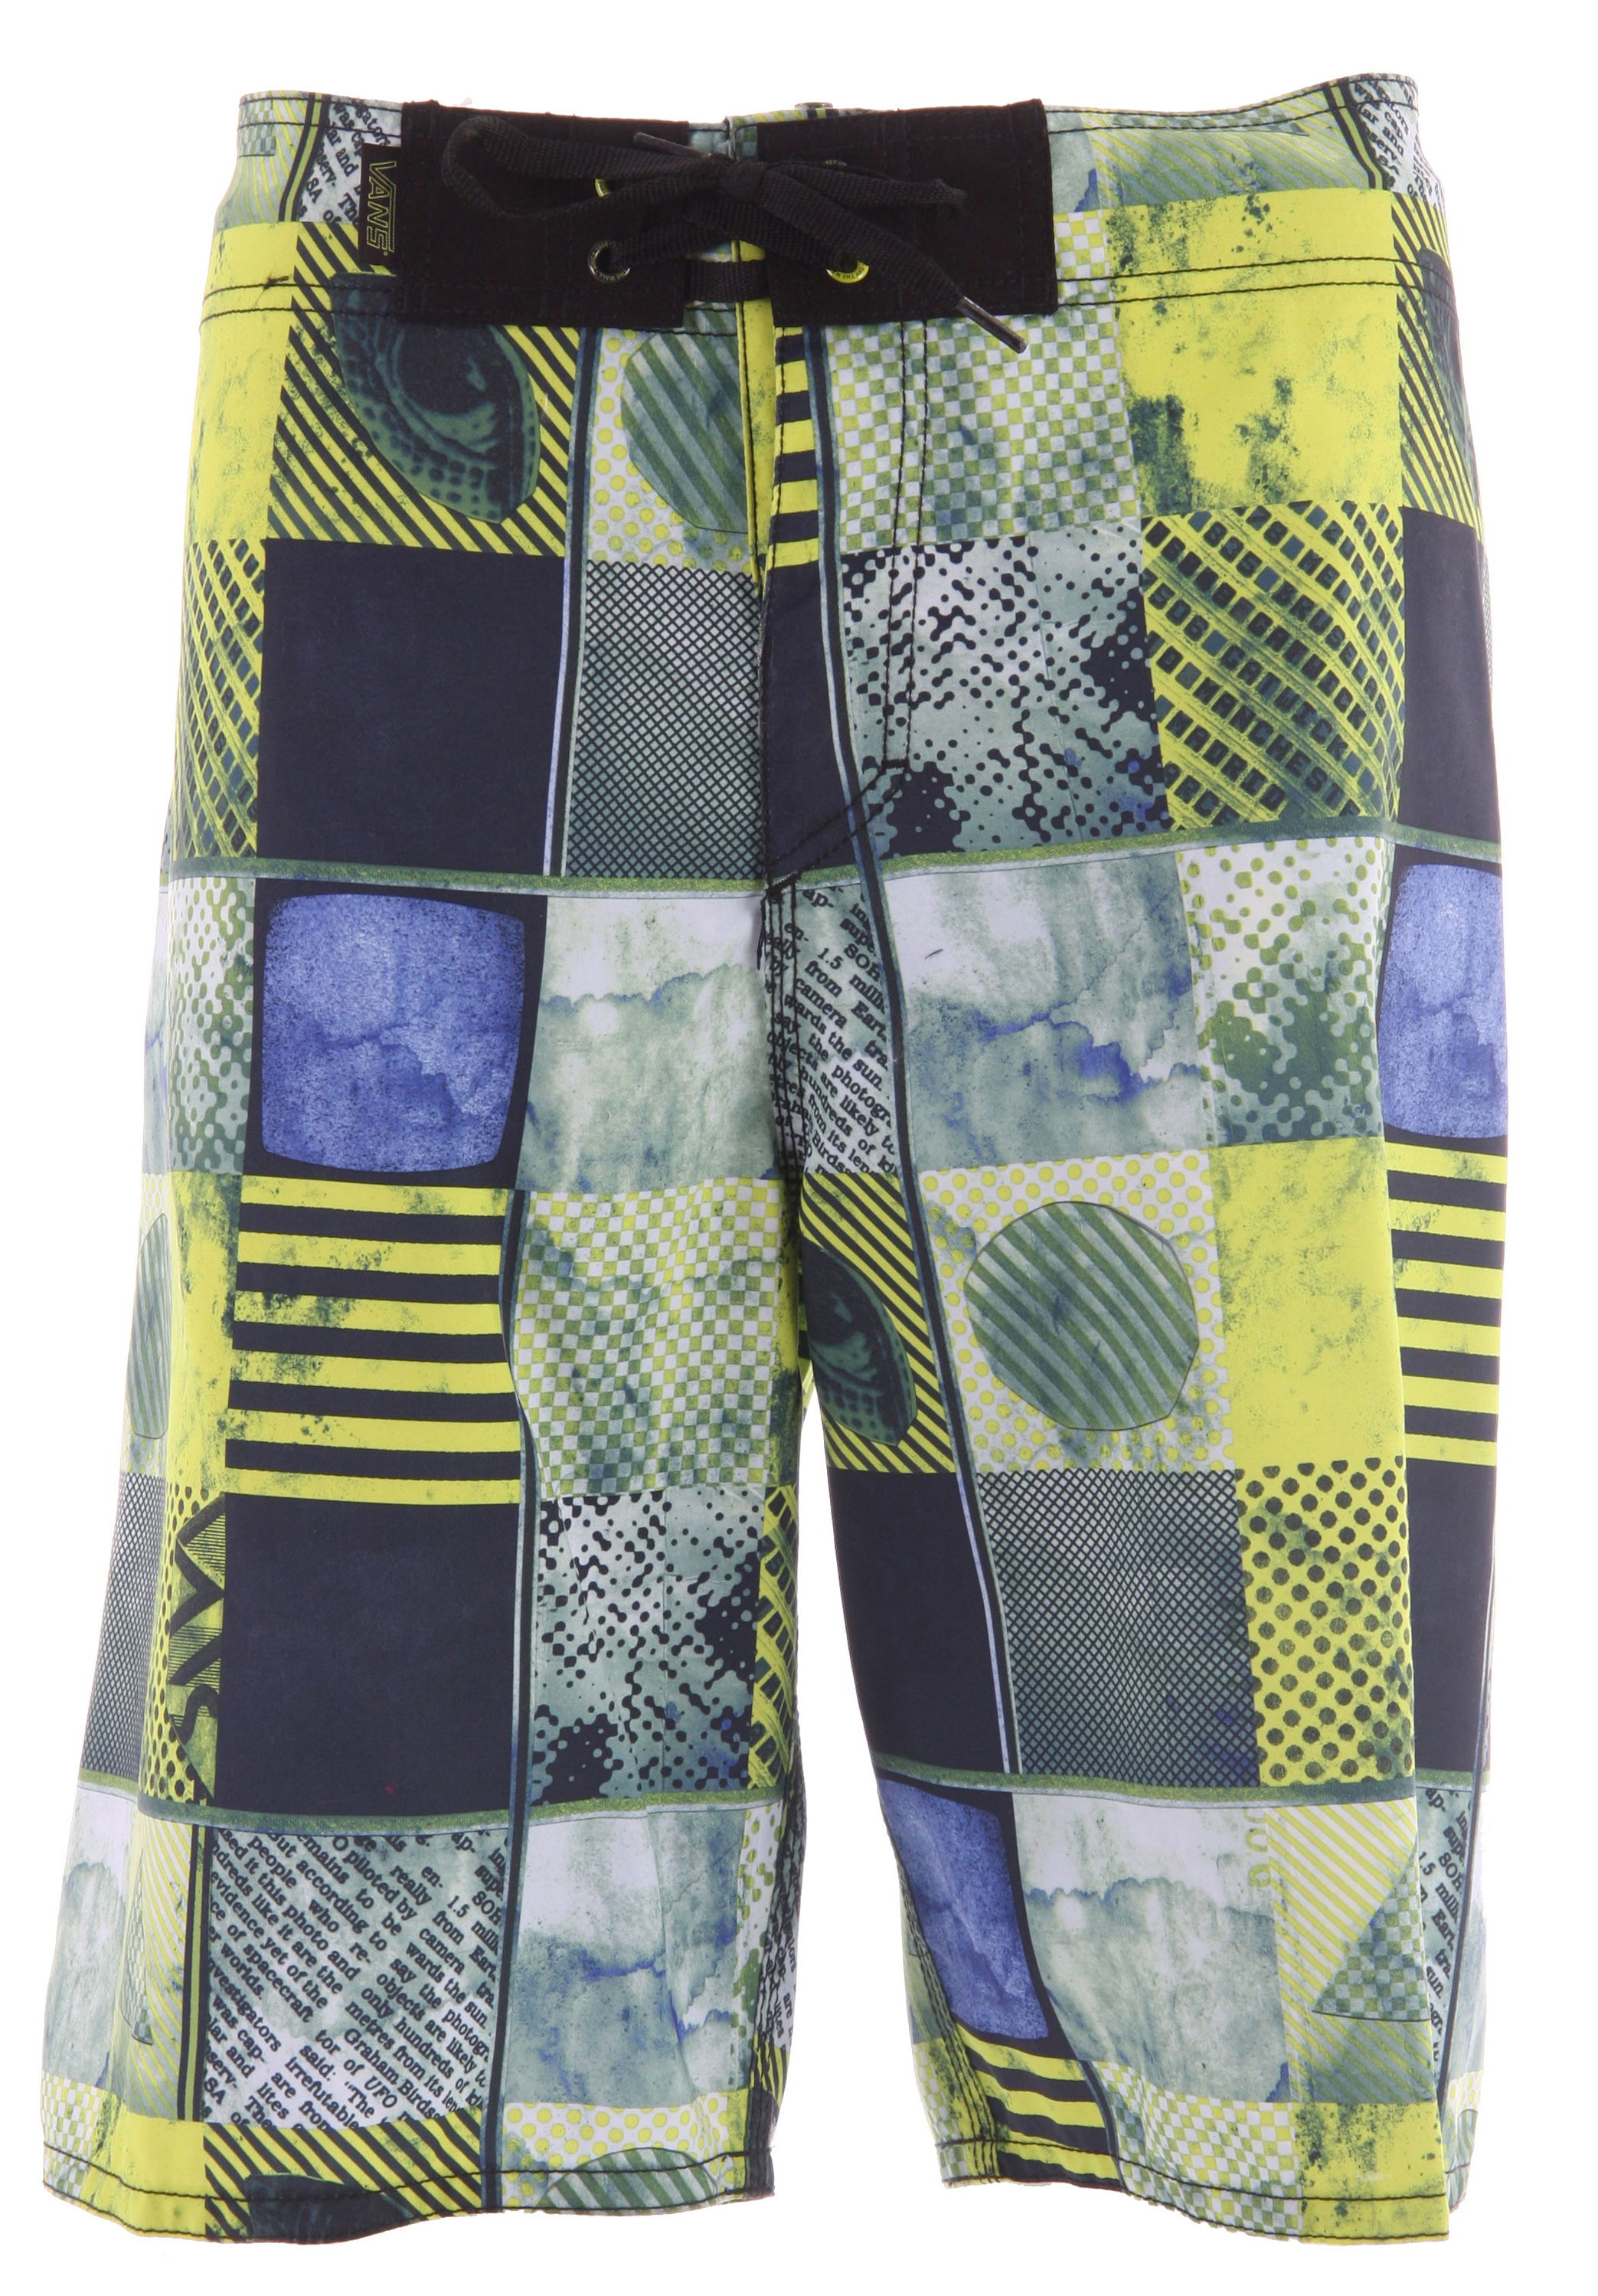 Surf The Off The Wall Boardshorts' complex photo montage and checkerboard look is only an intro to their surfing and swimming appeal. Performance features include a V-fly and drawstring closure, a Velcro closure back pocket, a handy key loop, a roomy 22-inch cut, and quick-drying 100% polyester construction. - $20.96